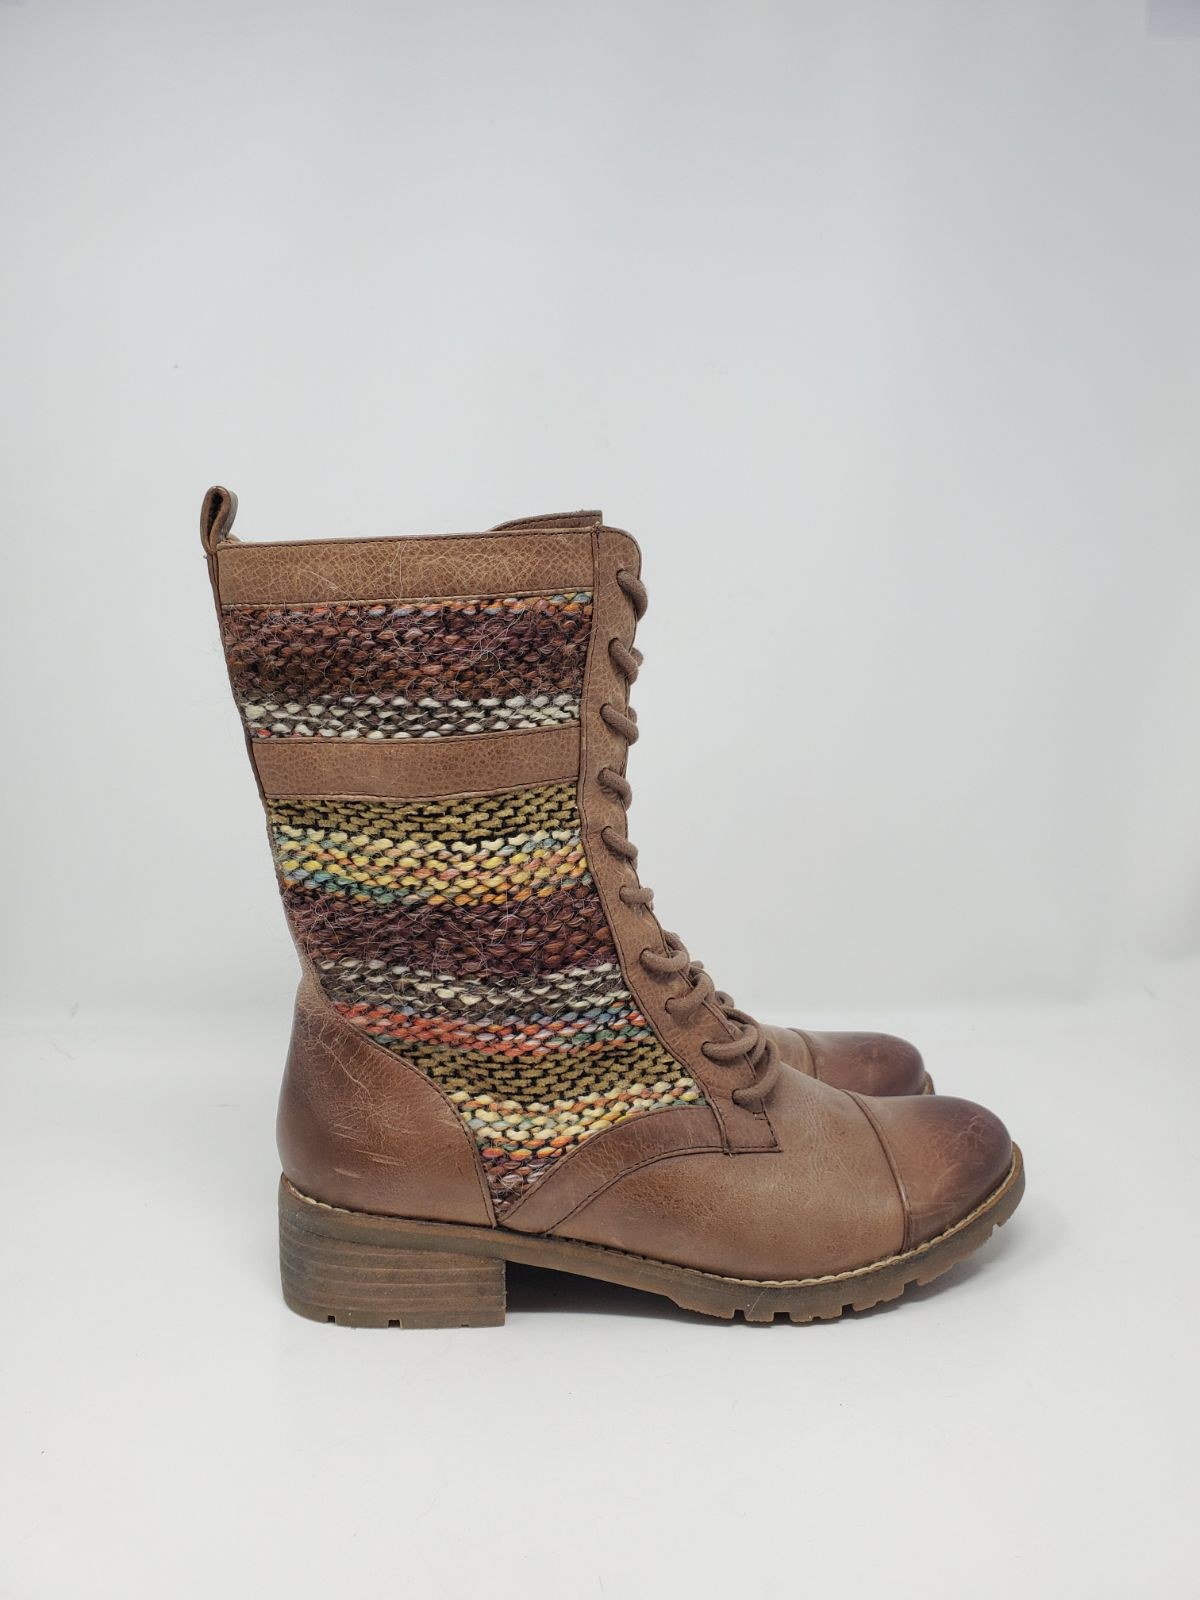 Like new $140 sofft leather combat boot